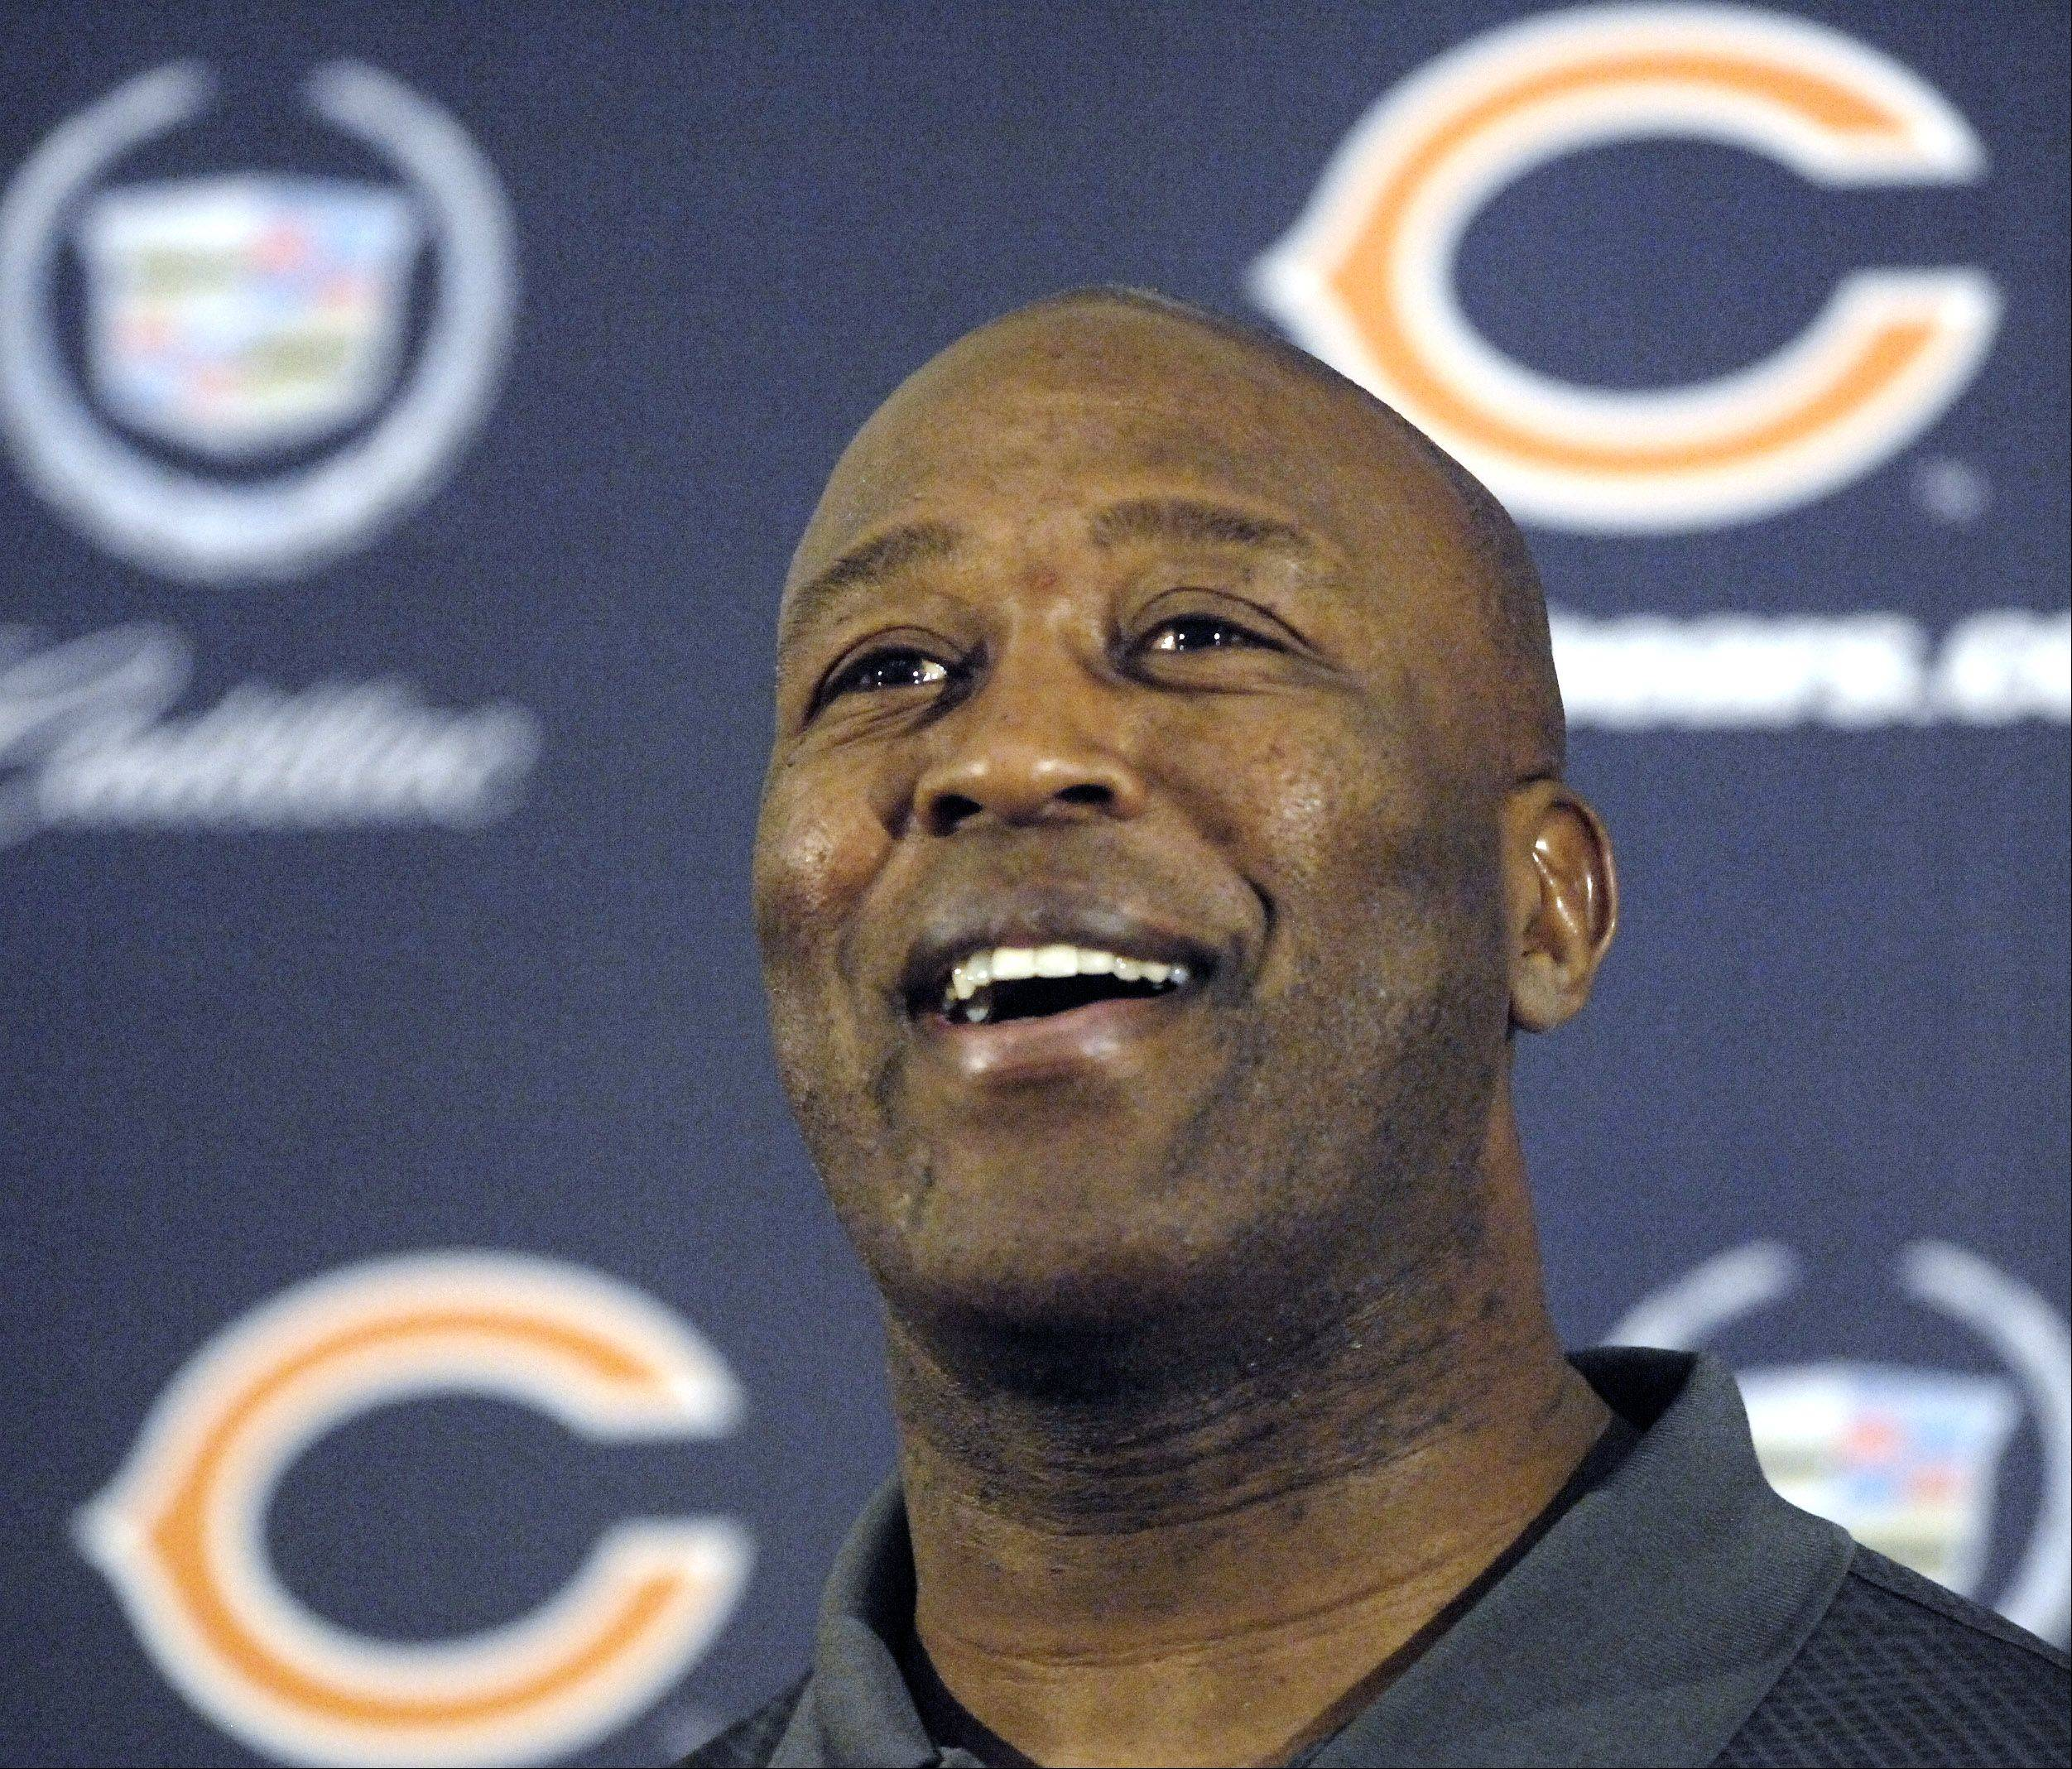 Chicago Bears' head coach Lovie Smith speaks at Halas Hall Monday afternoon following the 2006 NFC Championship game against the Saints.